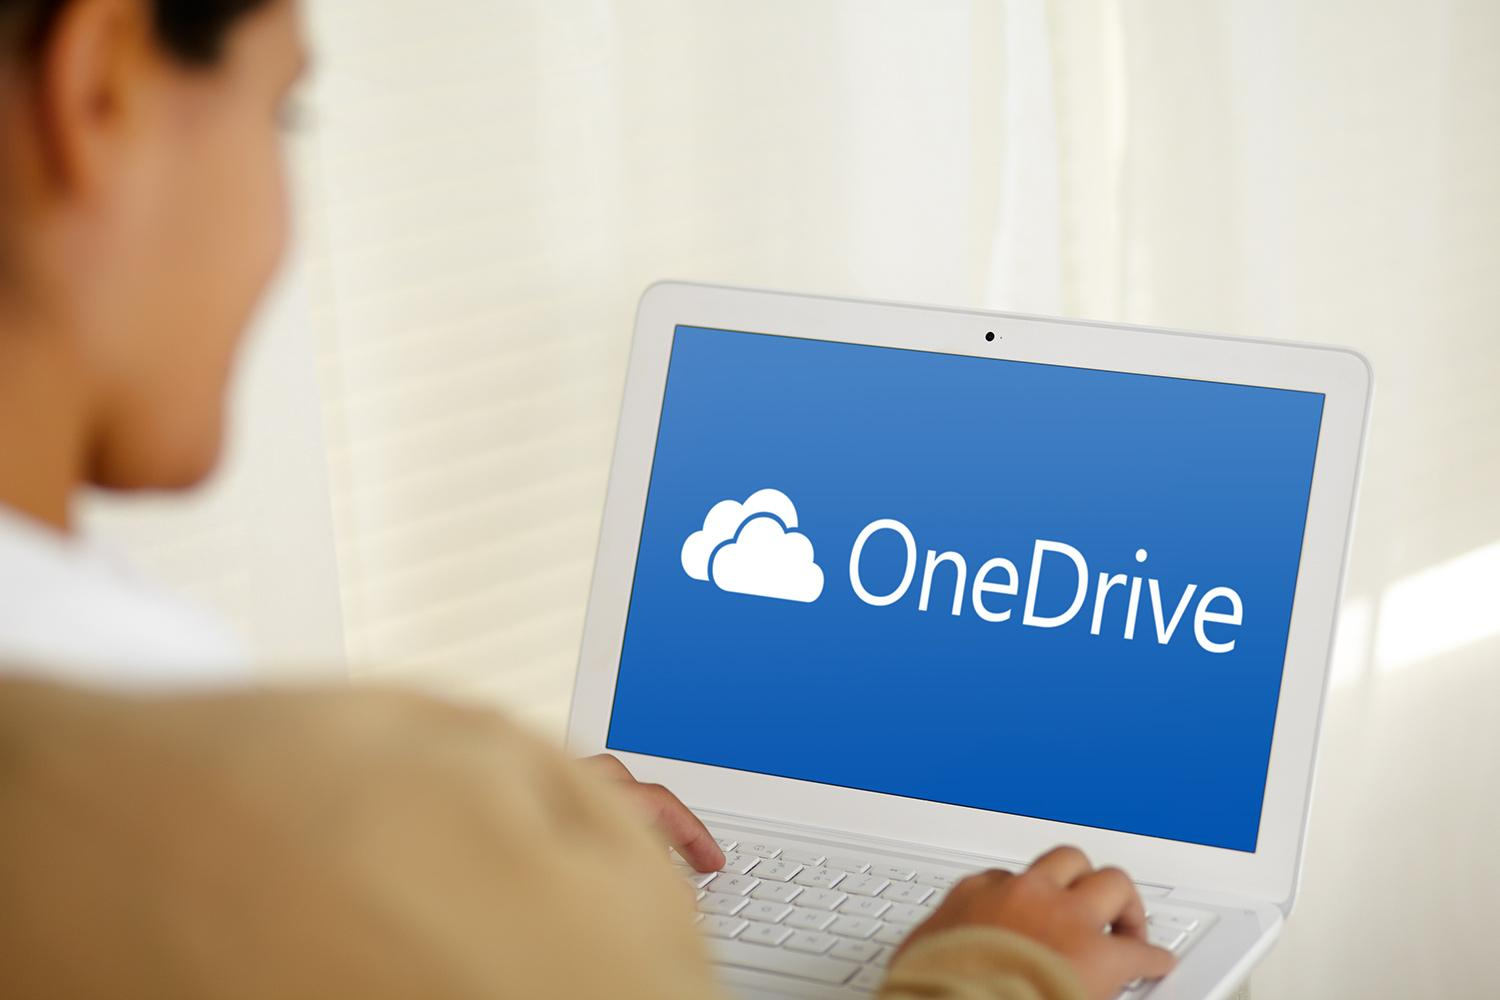 Microsoft's OneDrive Storage Reduction Only Hurts Users | Digital ...